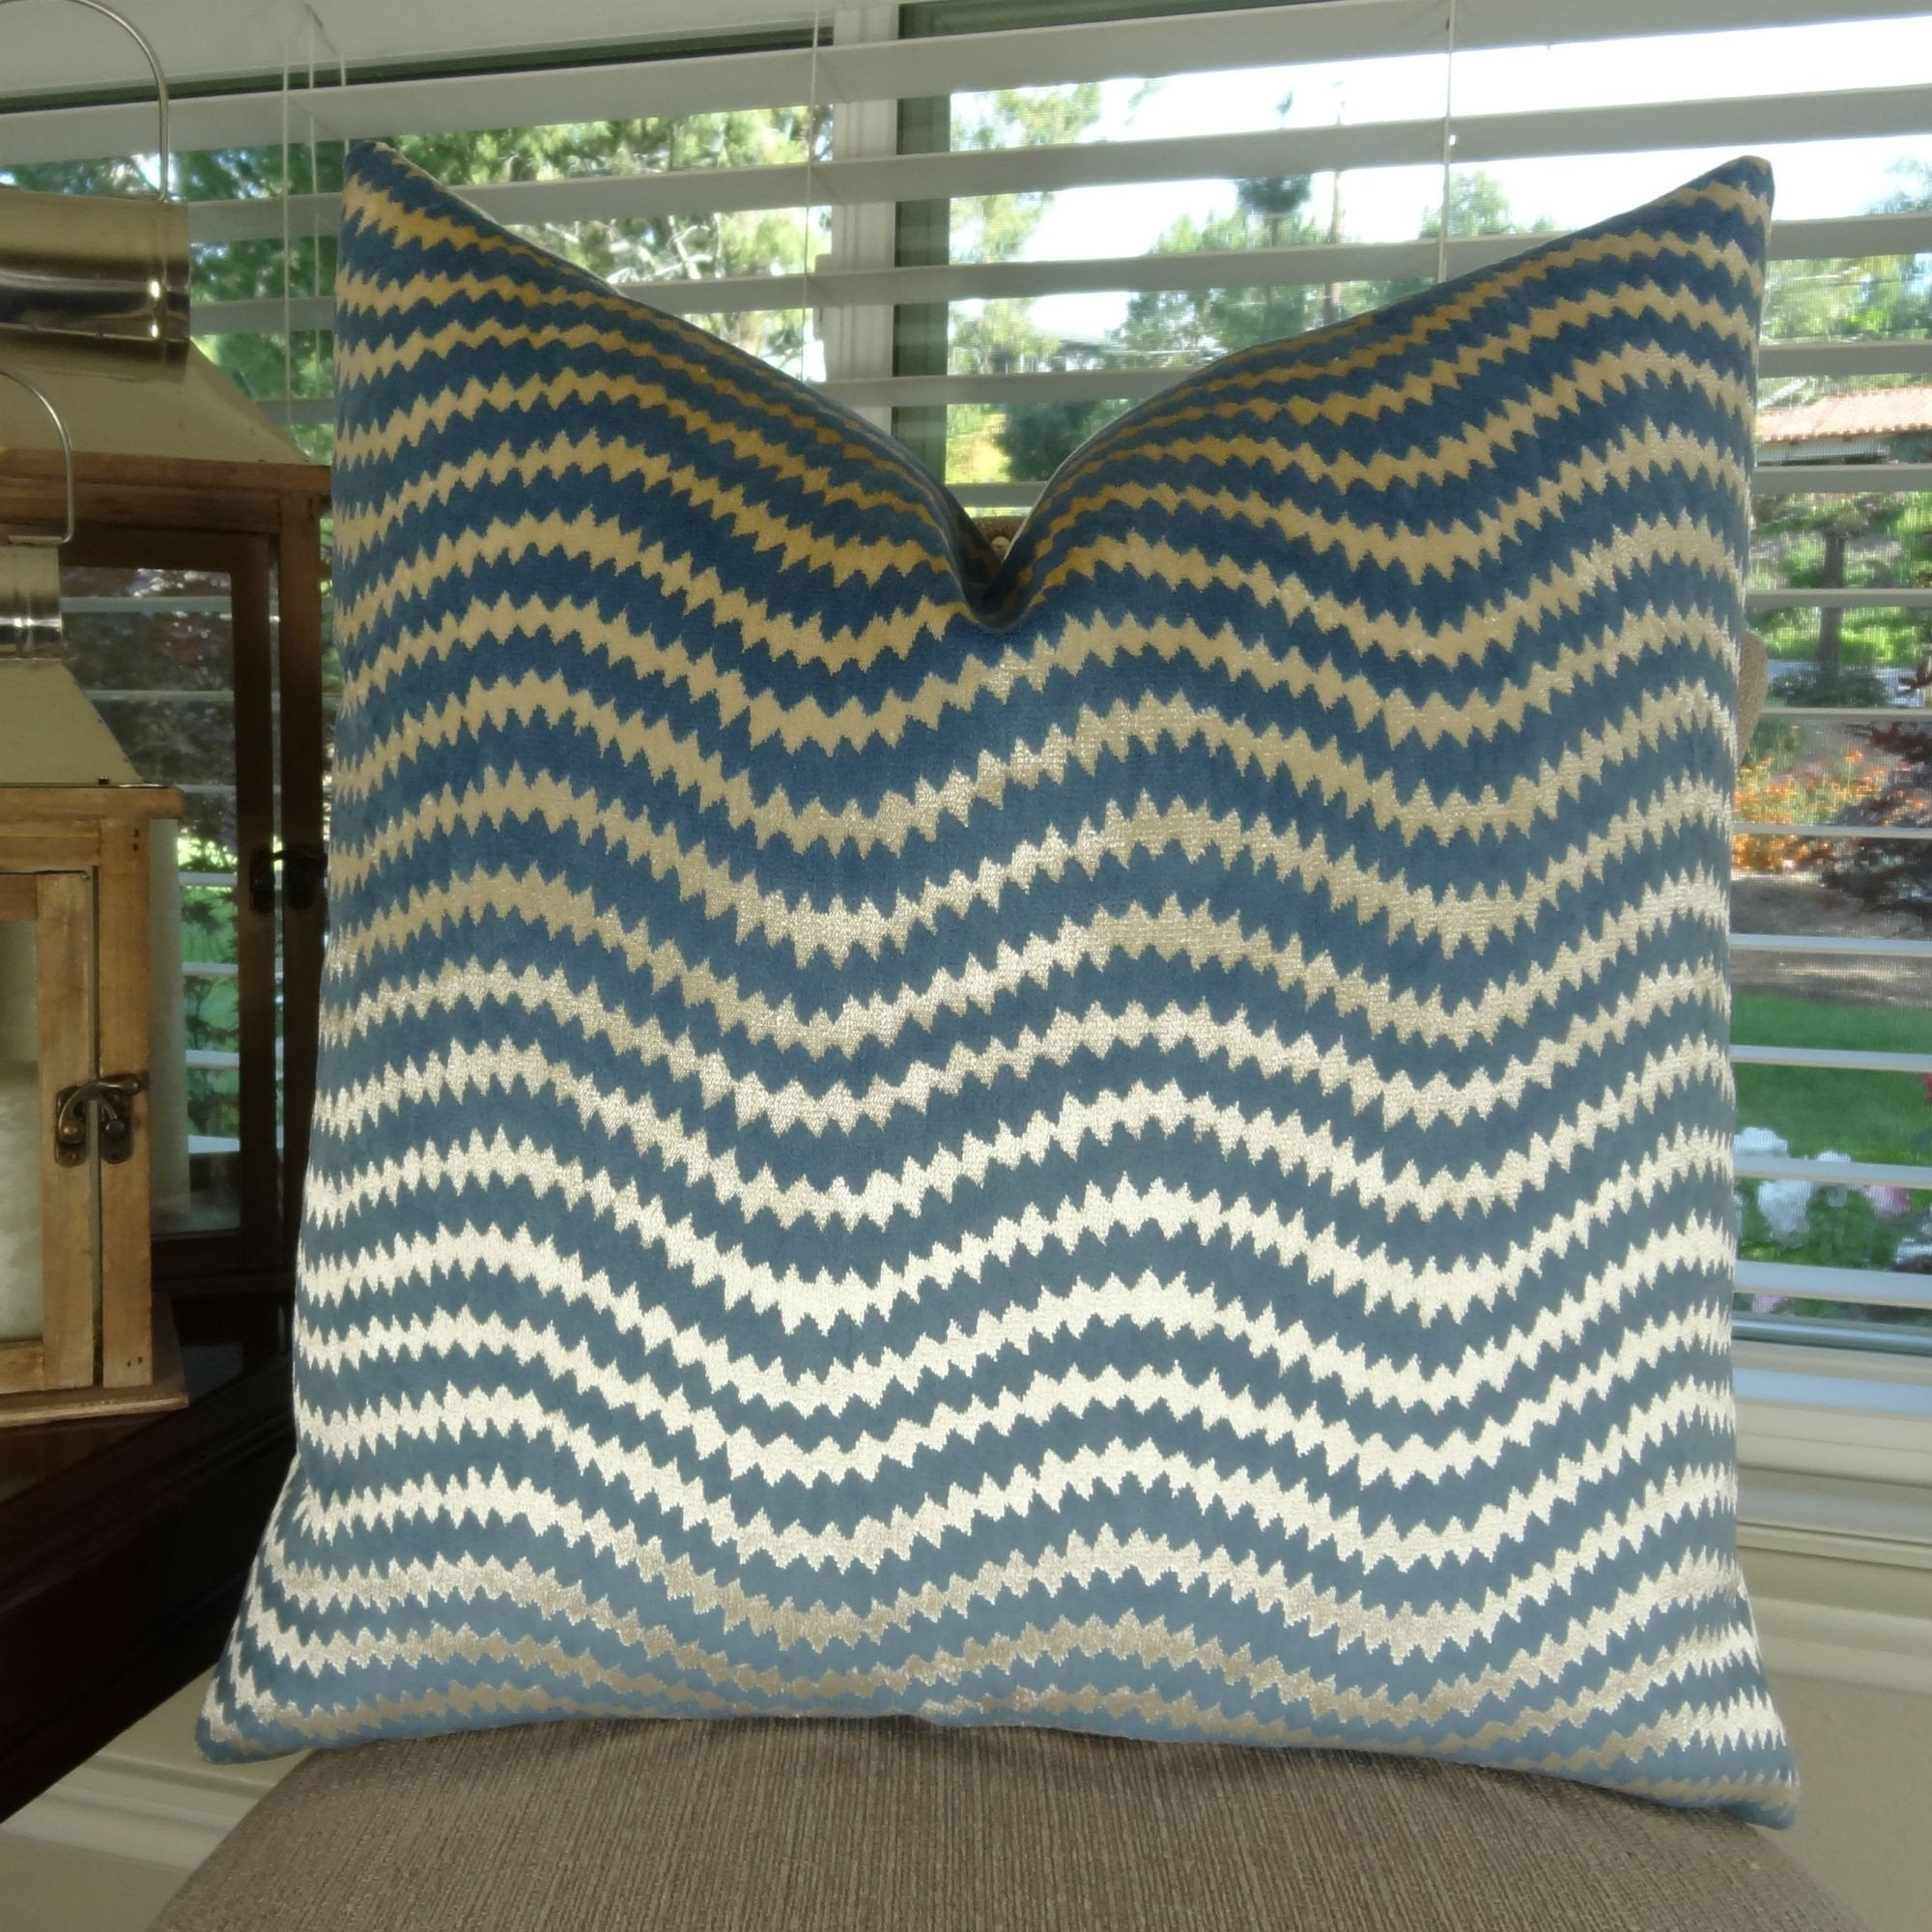 Thomas Collection Teal Cream Designer Luxury Velvet Chevron Throw Pillow, Handmade in USA, 11410D (Medium - Square - double sided 16 x 16)